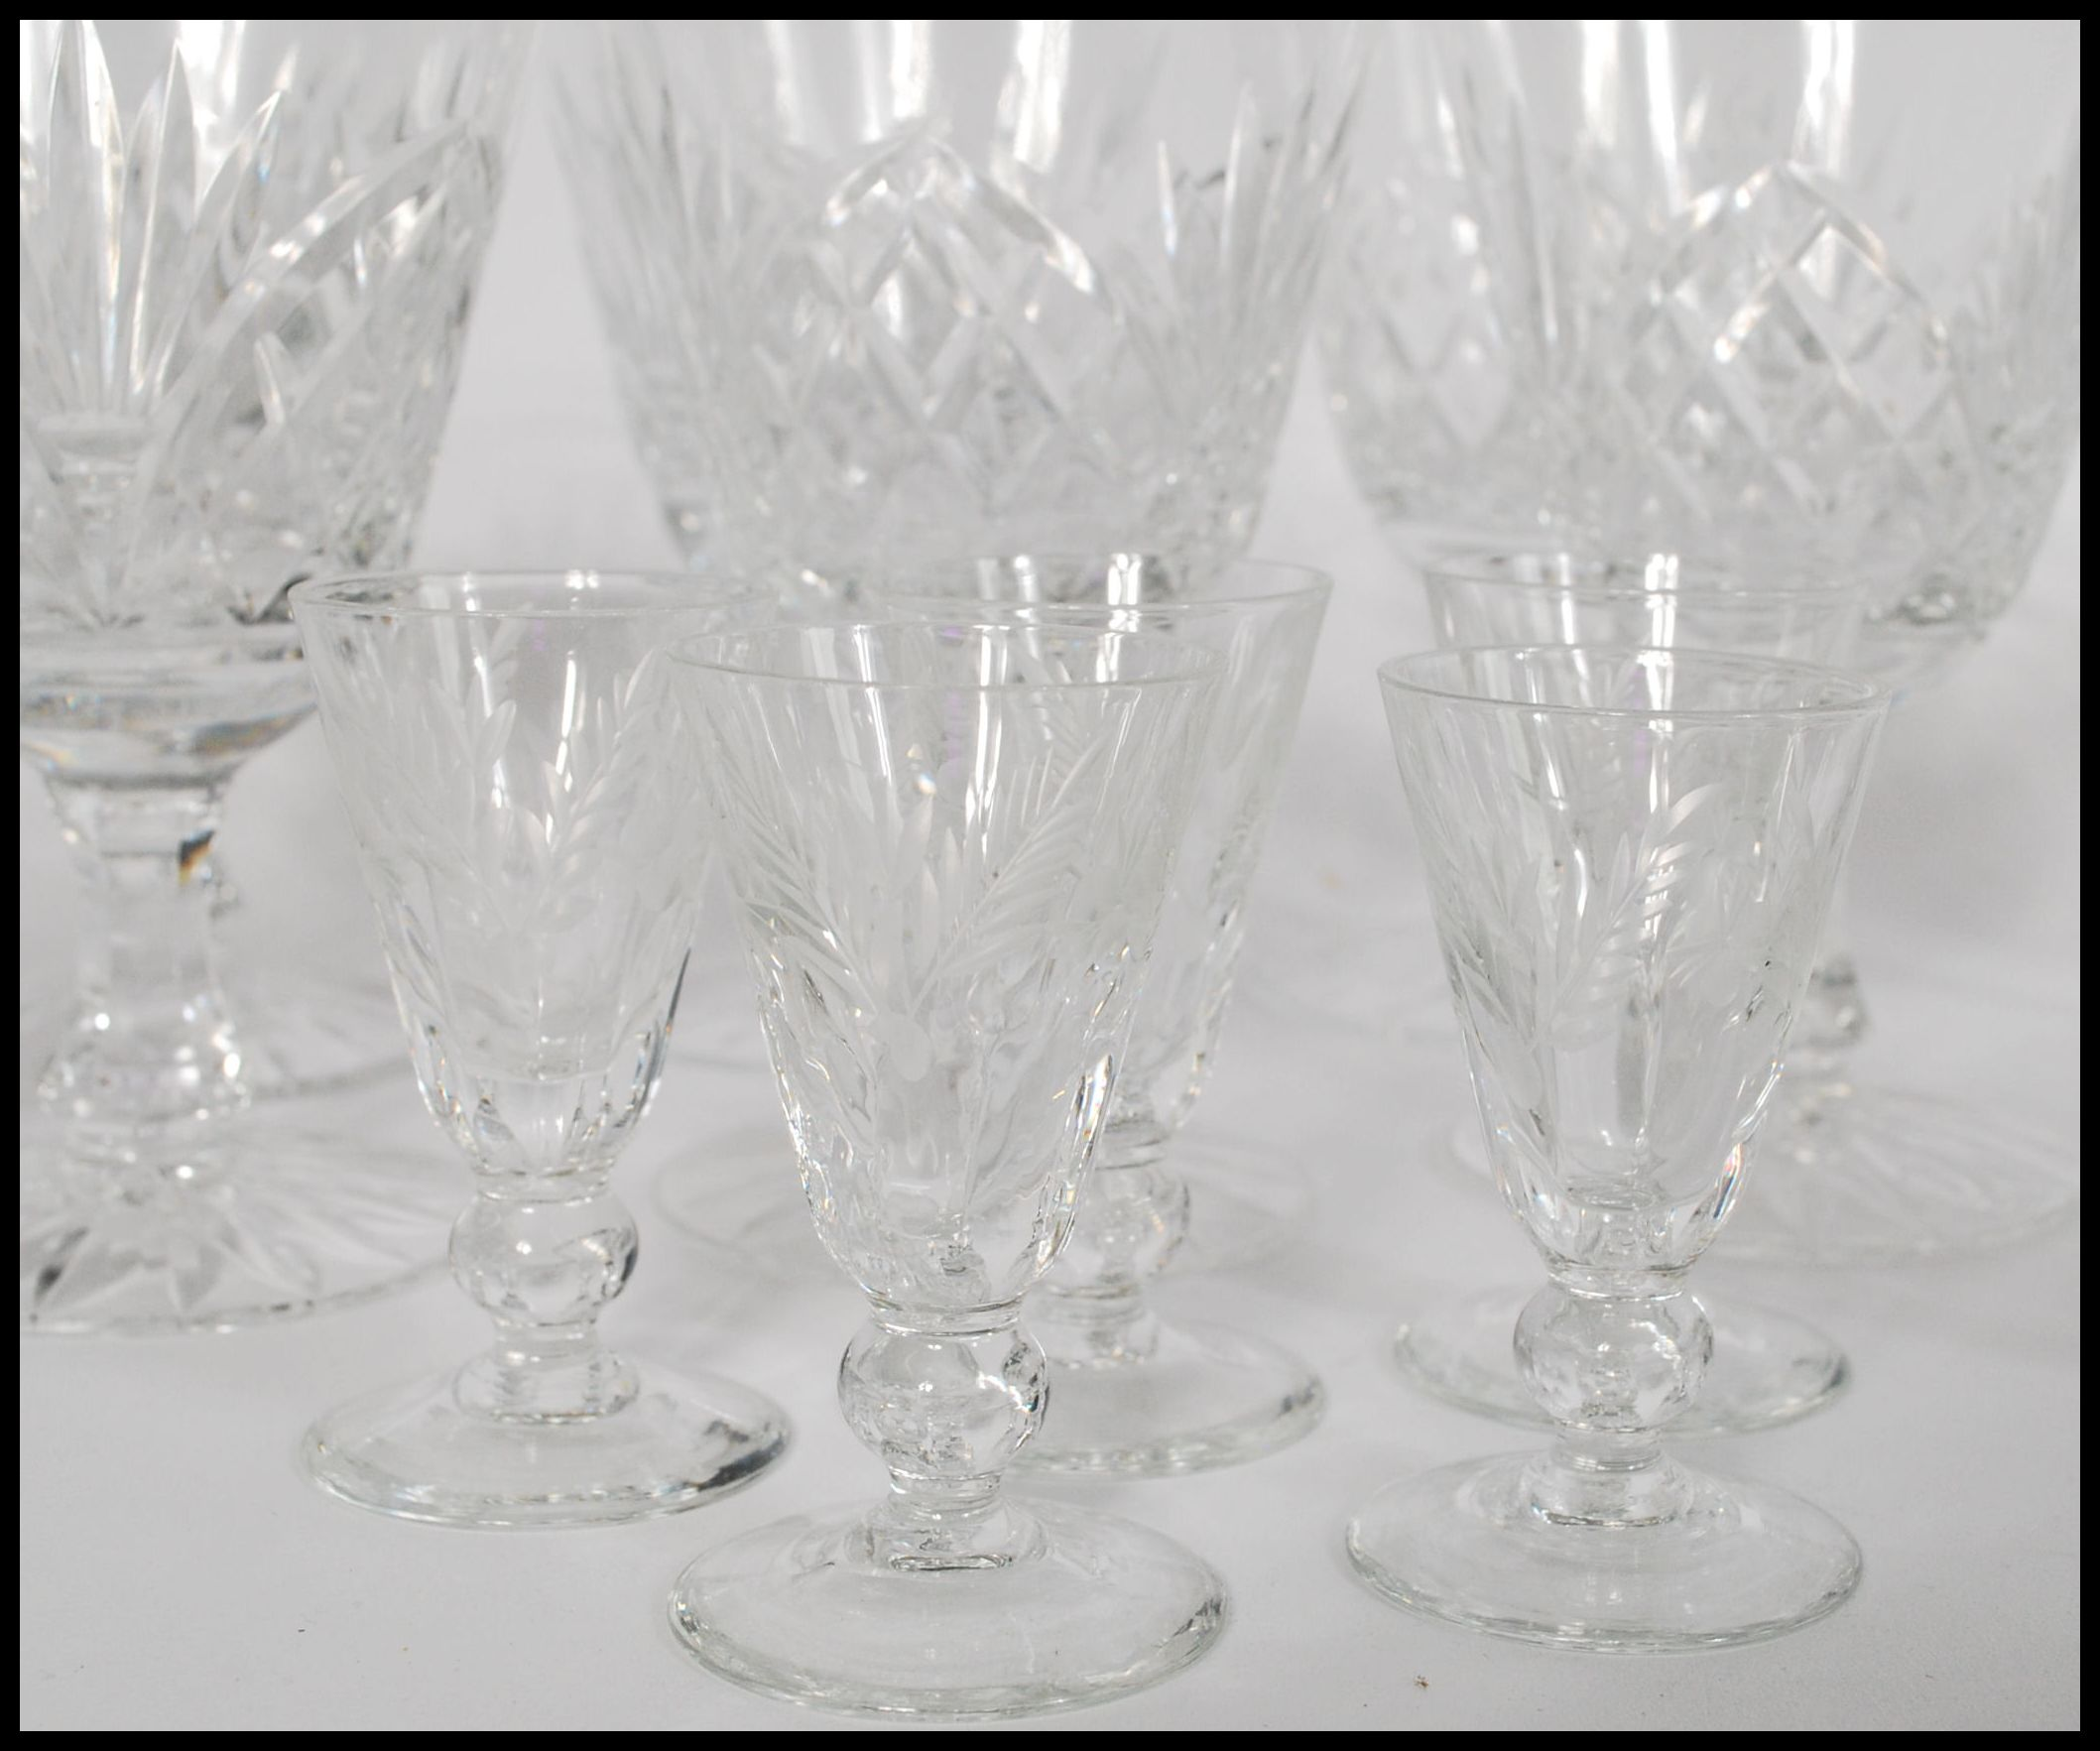 Lot 54 - A collection of vintage Royal Doulton cut glass crystal drinking glasses, to include large wine